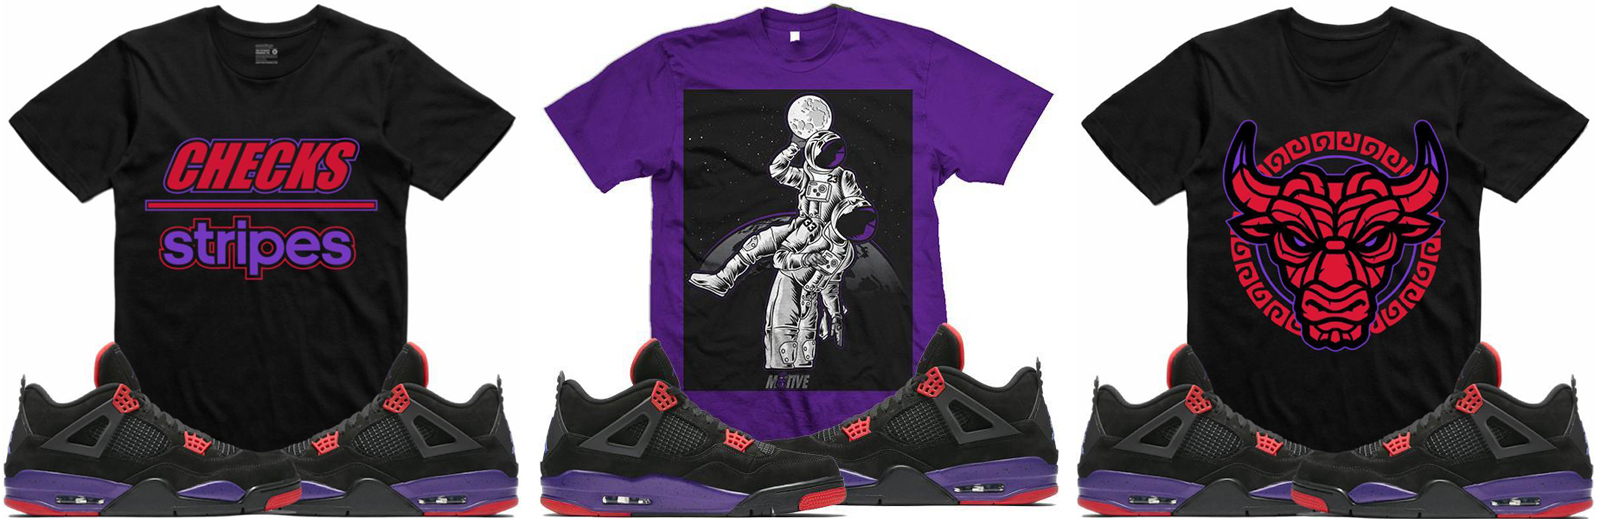 1489d9557552d5 Sneaker Shirts to Match Jordan 4 Raptors